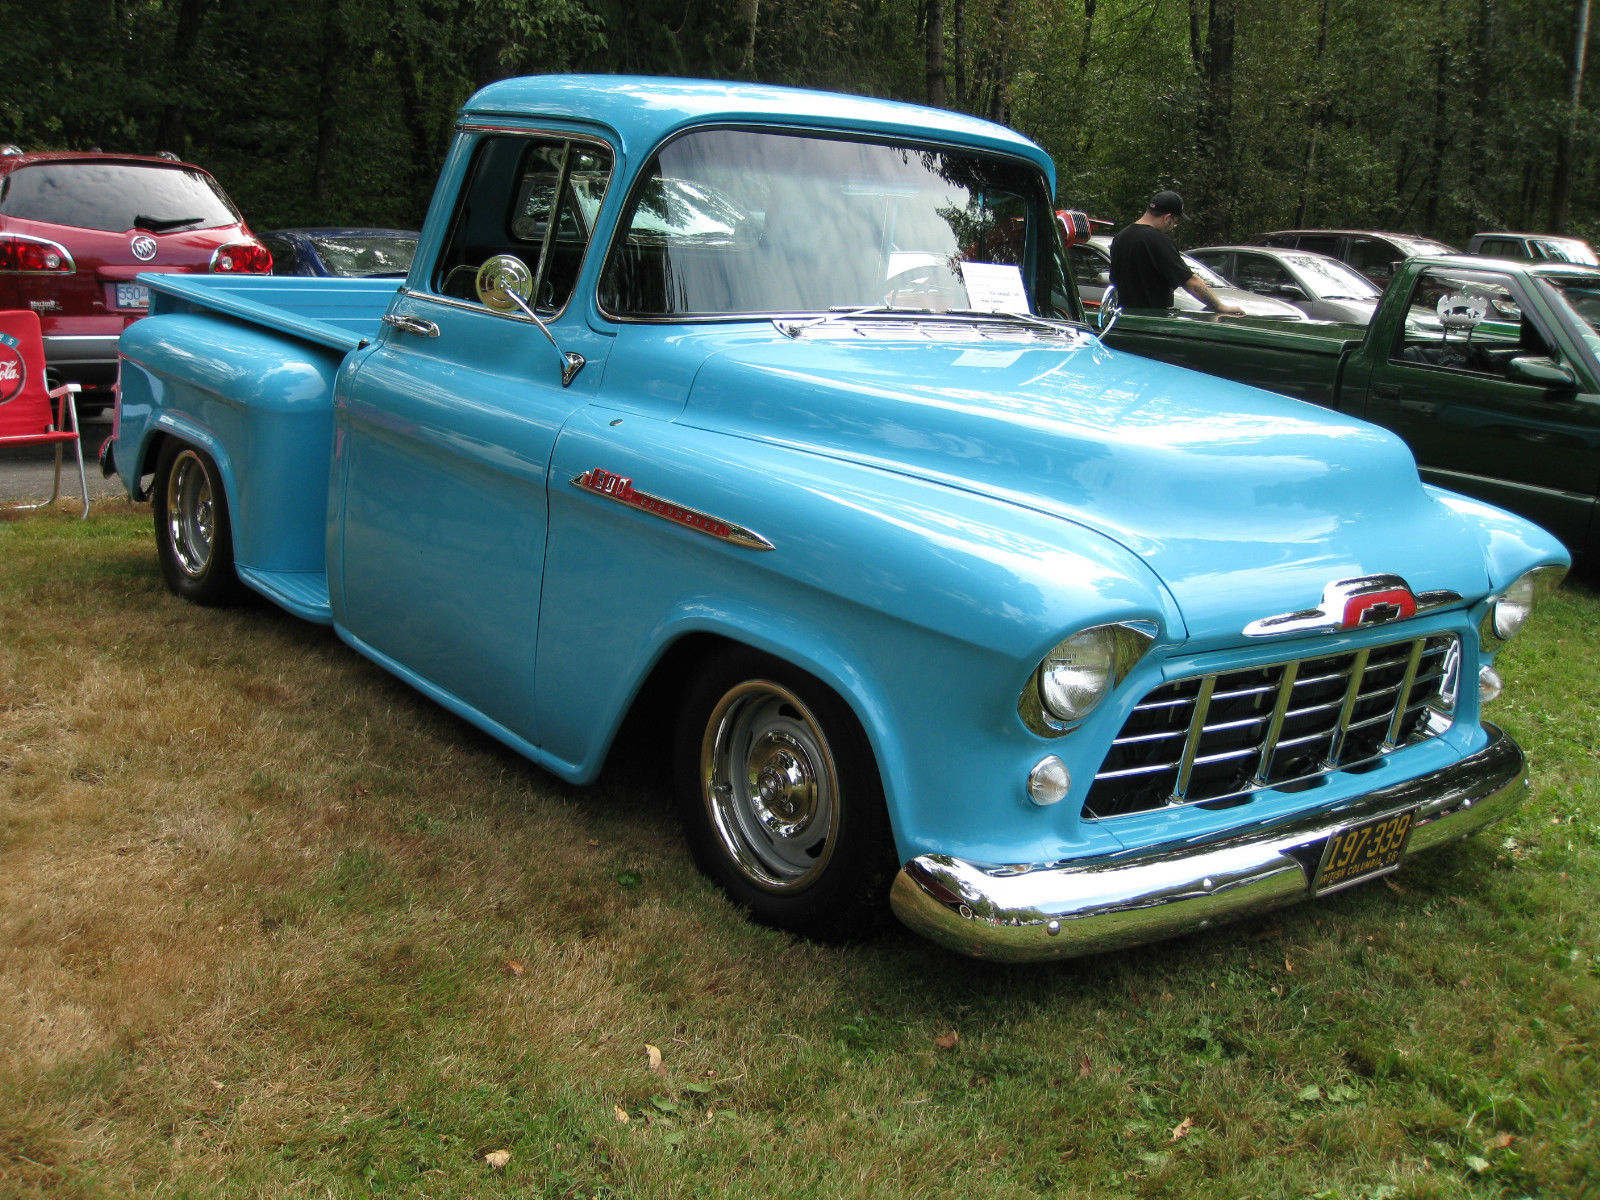 1956 CHEVROLET 1300 PICKUP TRUCK HOT ROD STREET ROD 350HO